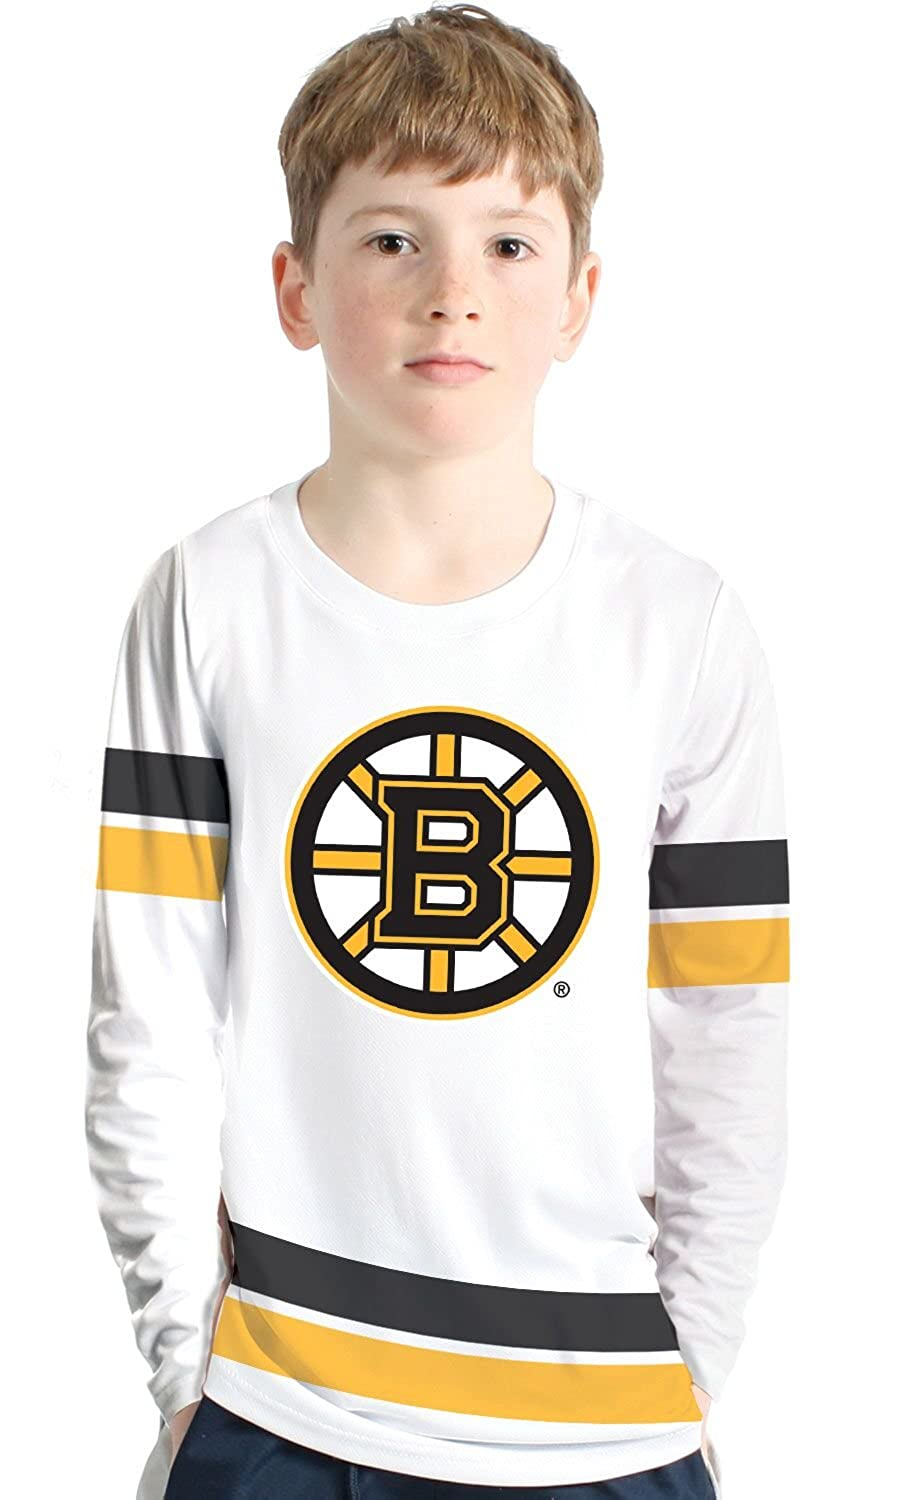 NHL Authentic Scrimmage Youth Shirt - Boston Bruins Levelwear